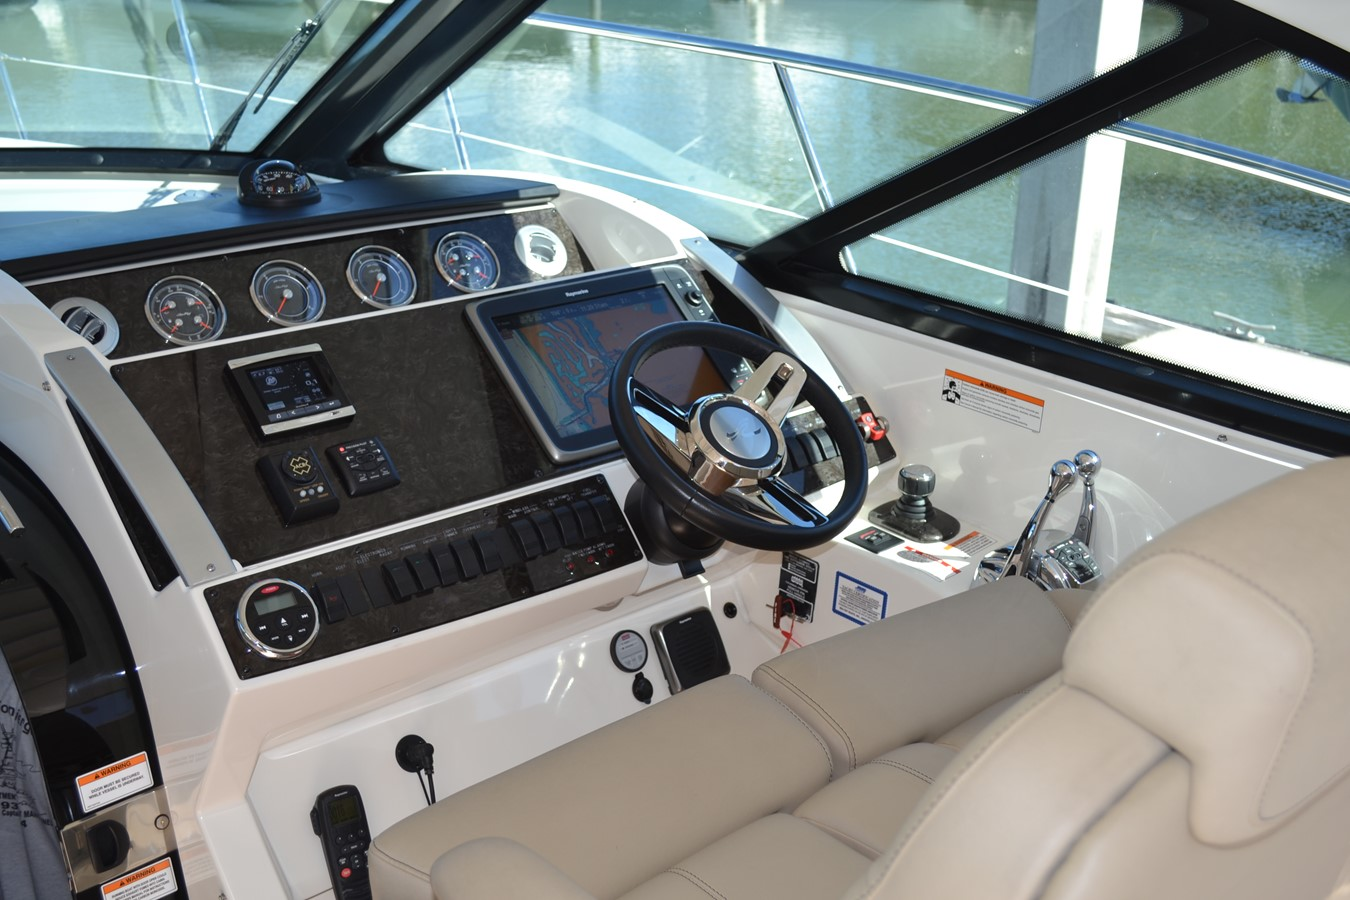 Upgraded Dash SmartCraft Diagnostic  with Glass Lenses 2015 SEA RAY 410 Sundancer Motor Yacht 1685725